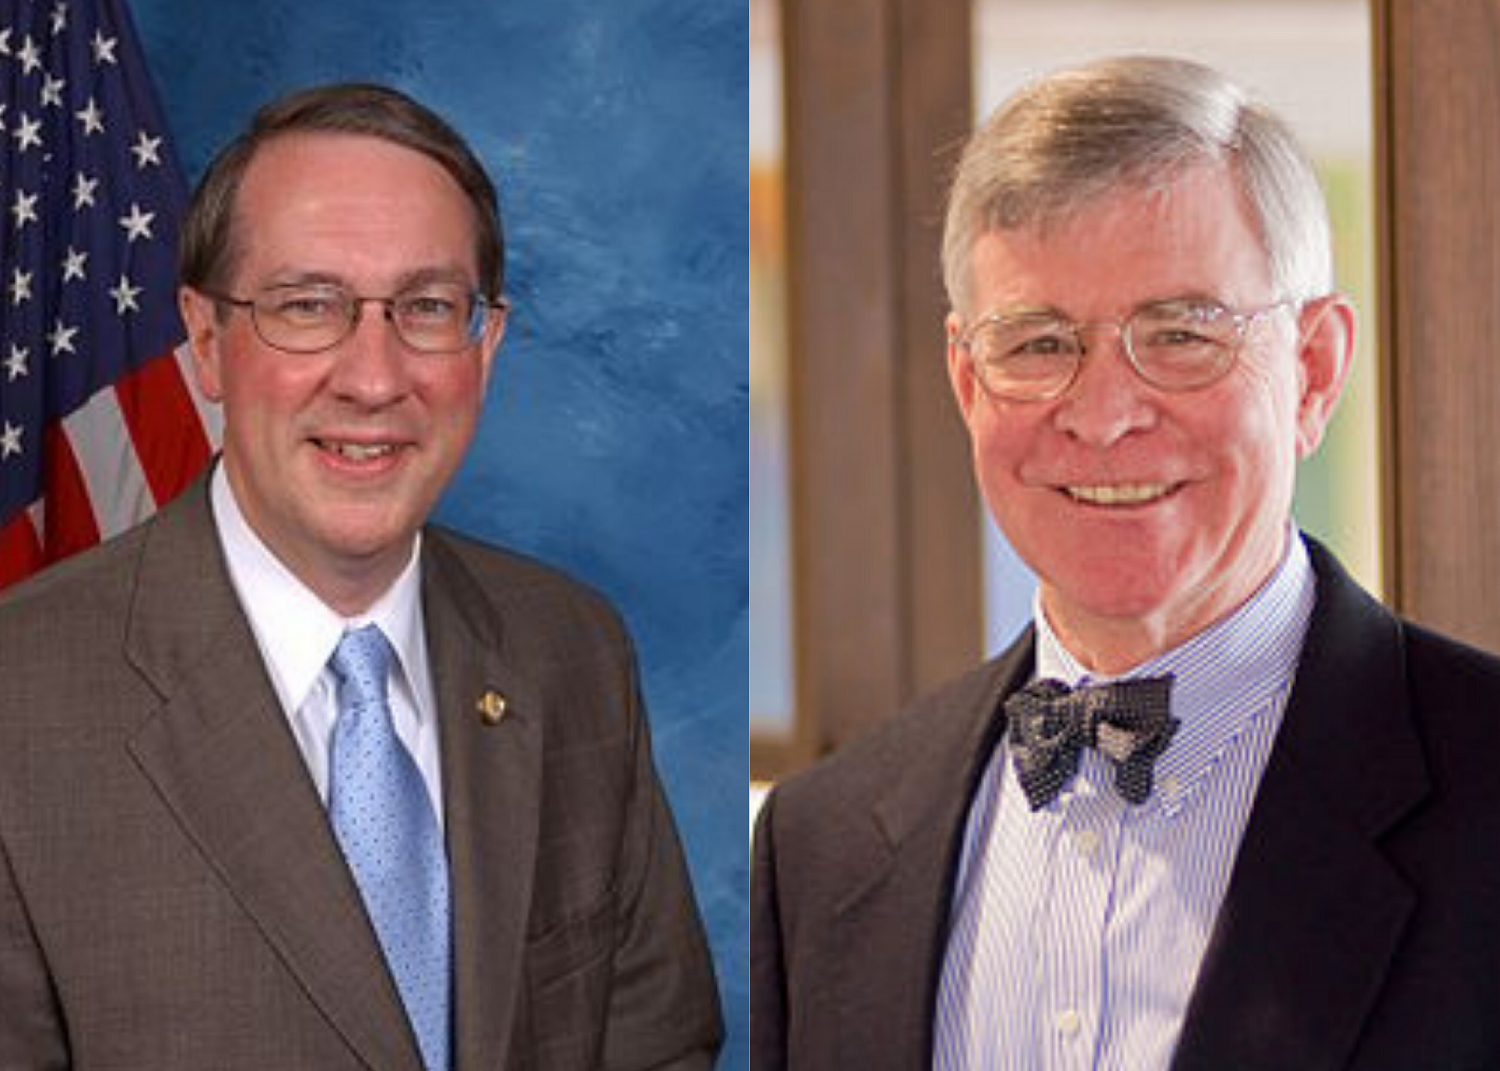 Watch: Batten Hour with Representatives Goodlatte & Skaggs